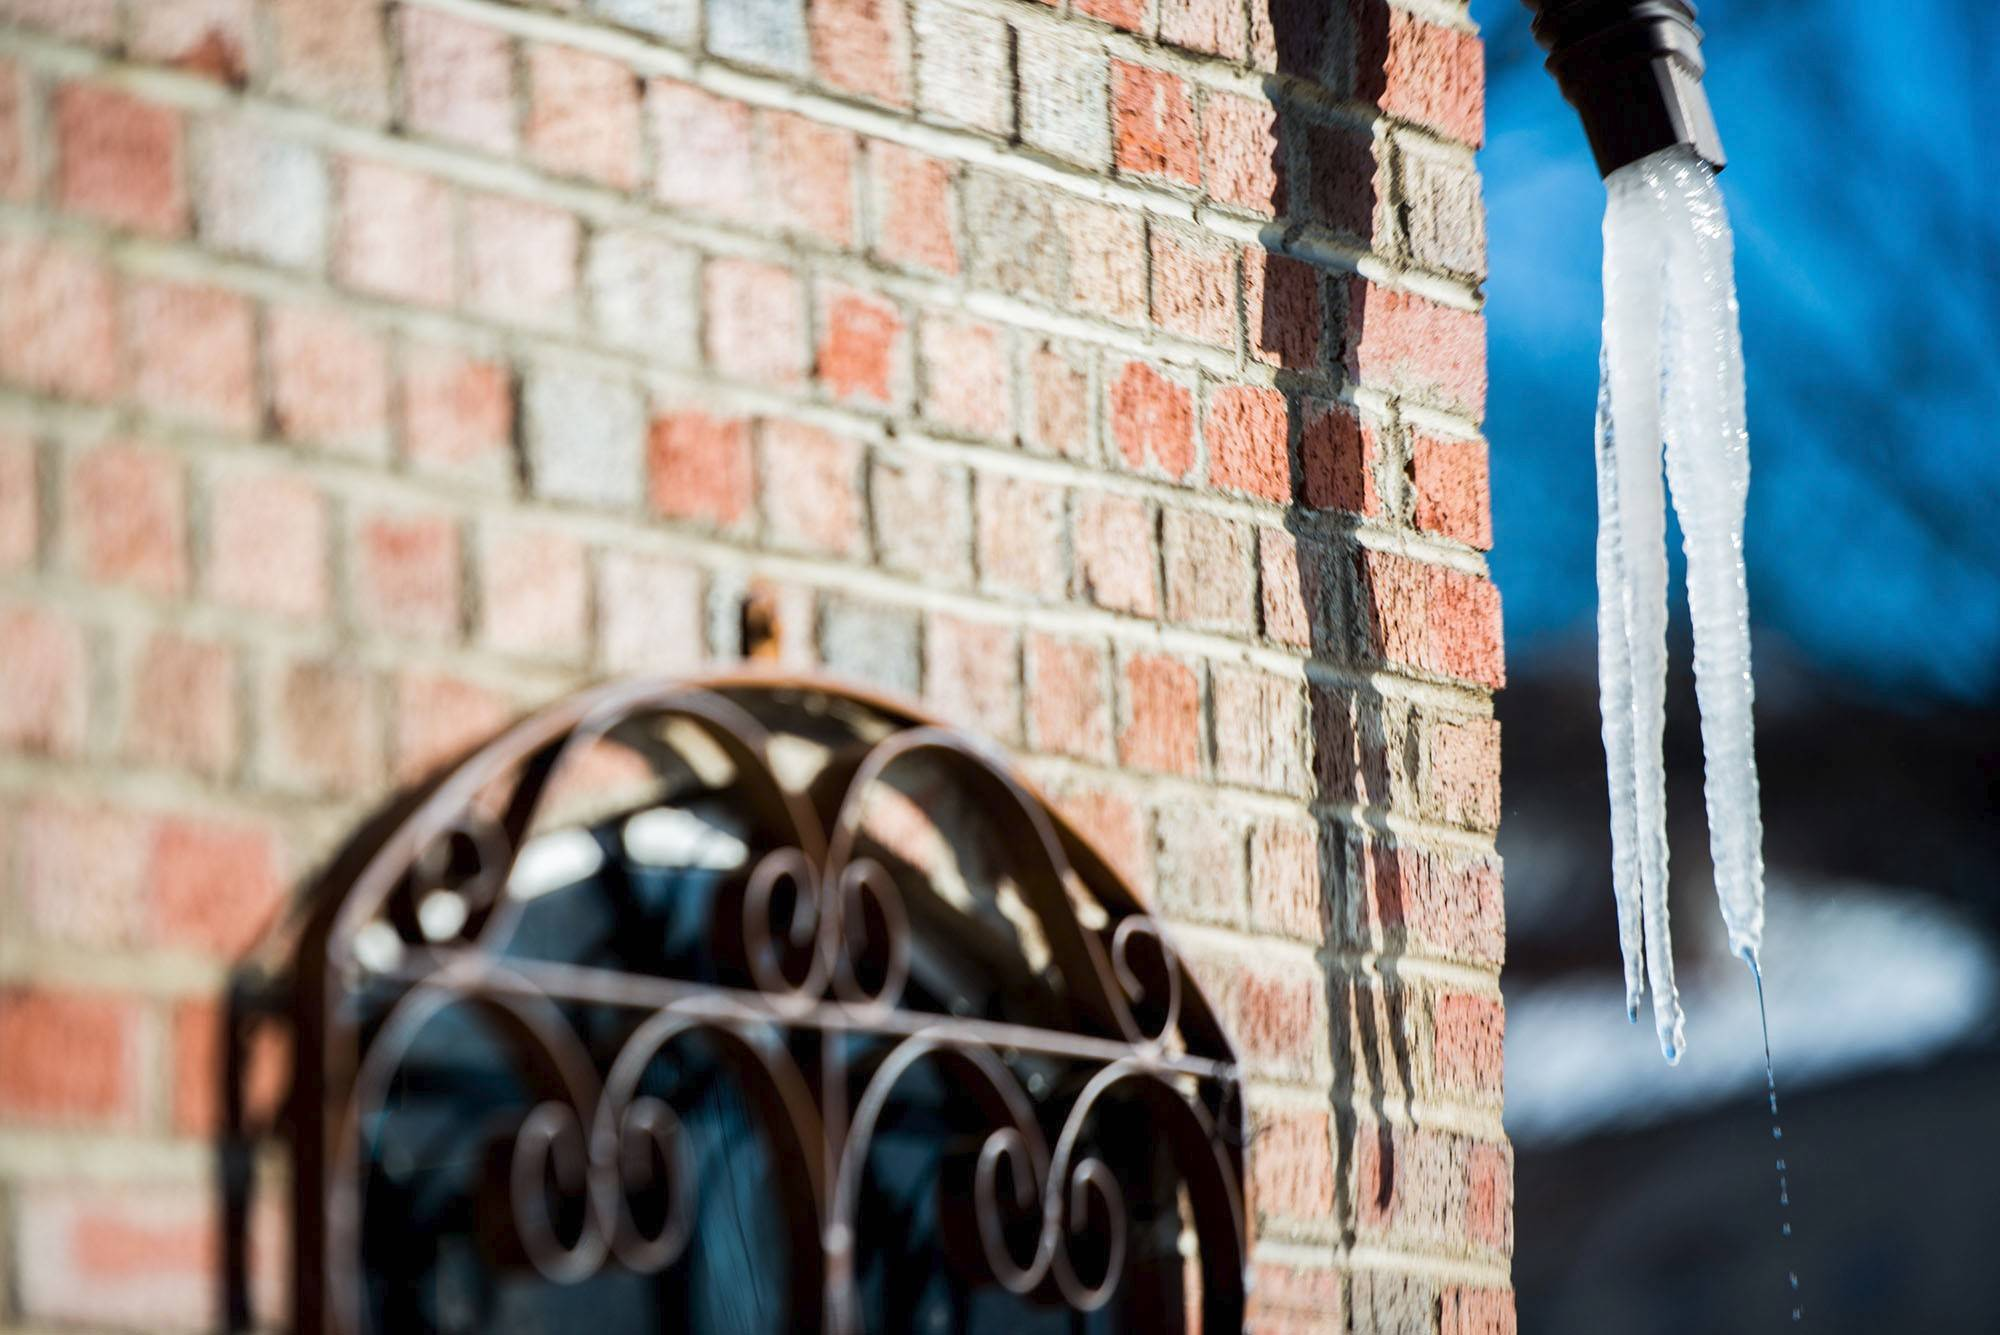 Icicles might be pretty, but they also can indicate a problem: gutters that aren't draining properly, which can cause significant damage to your house.